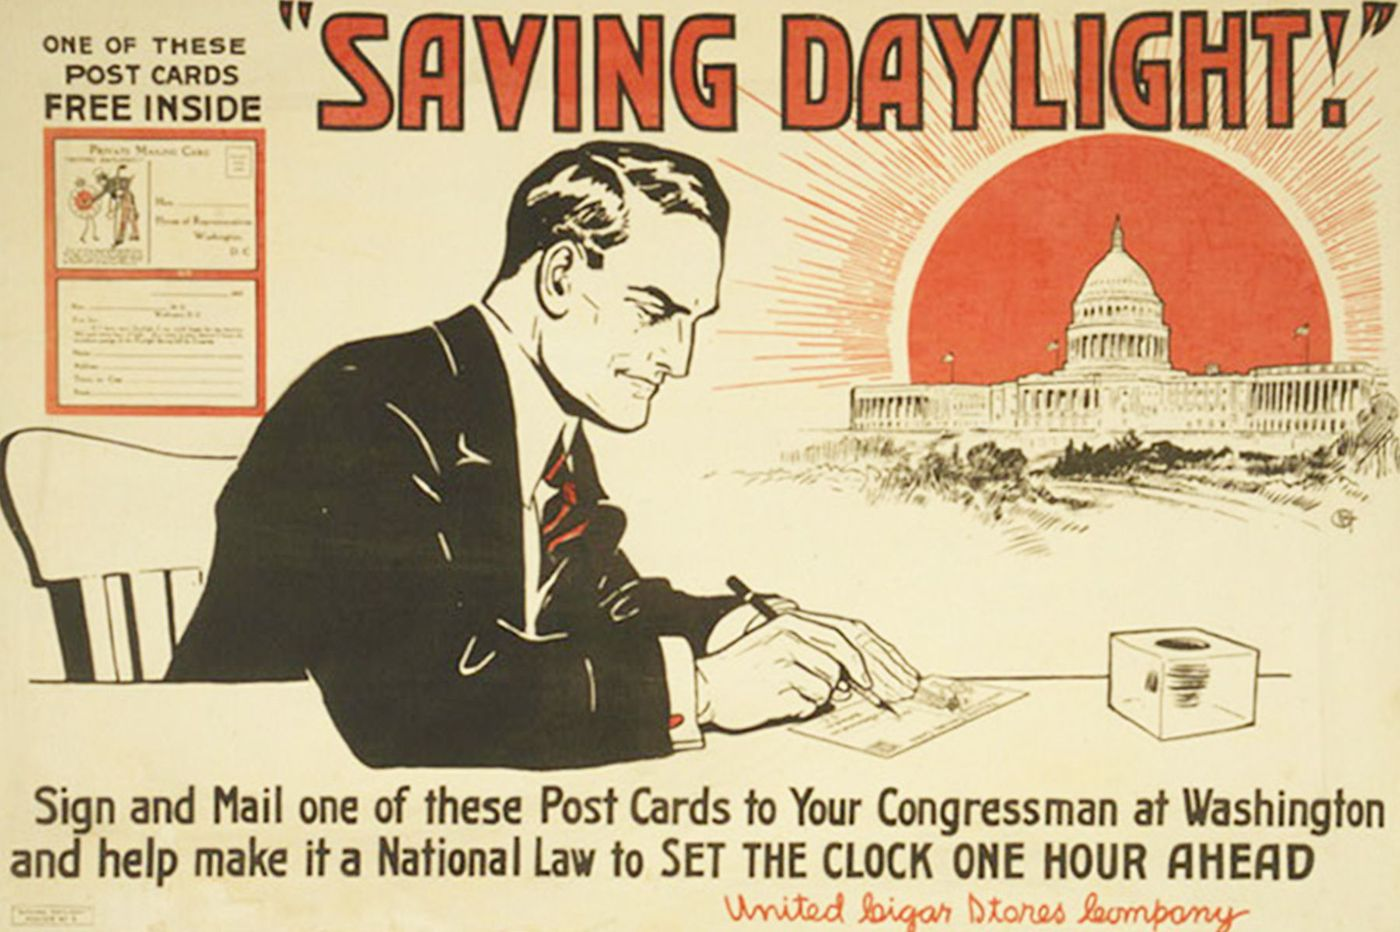 Daylight saving time has begun. Most people just want to stop changing their clocks.